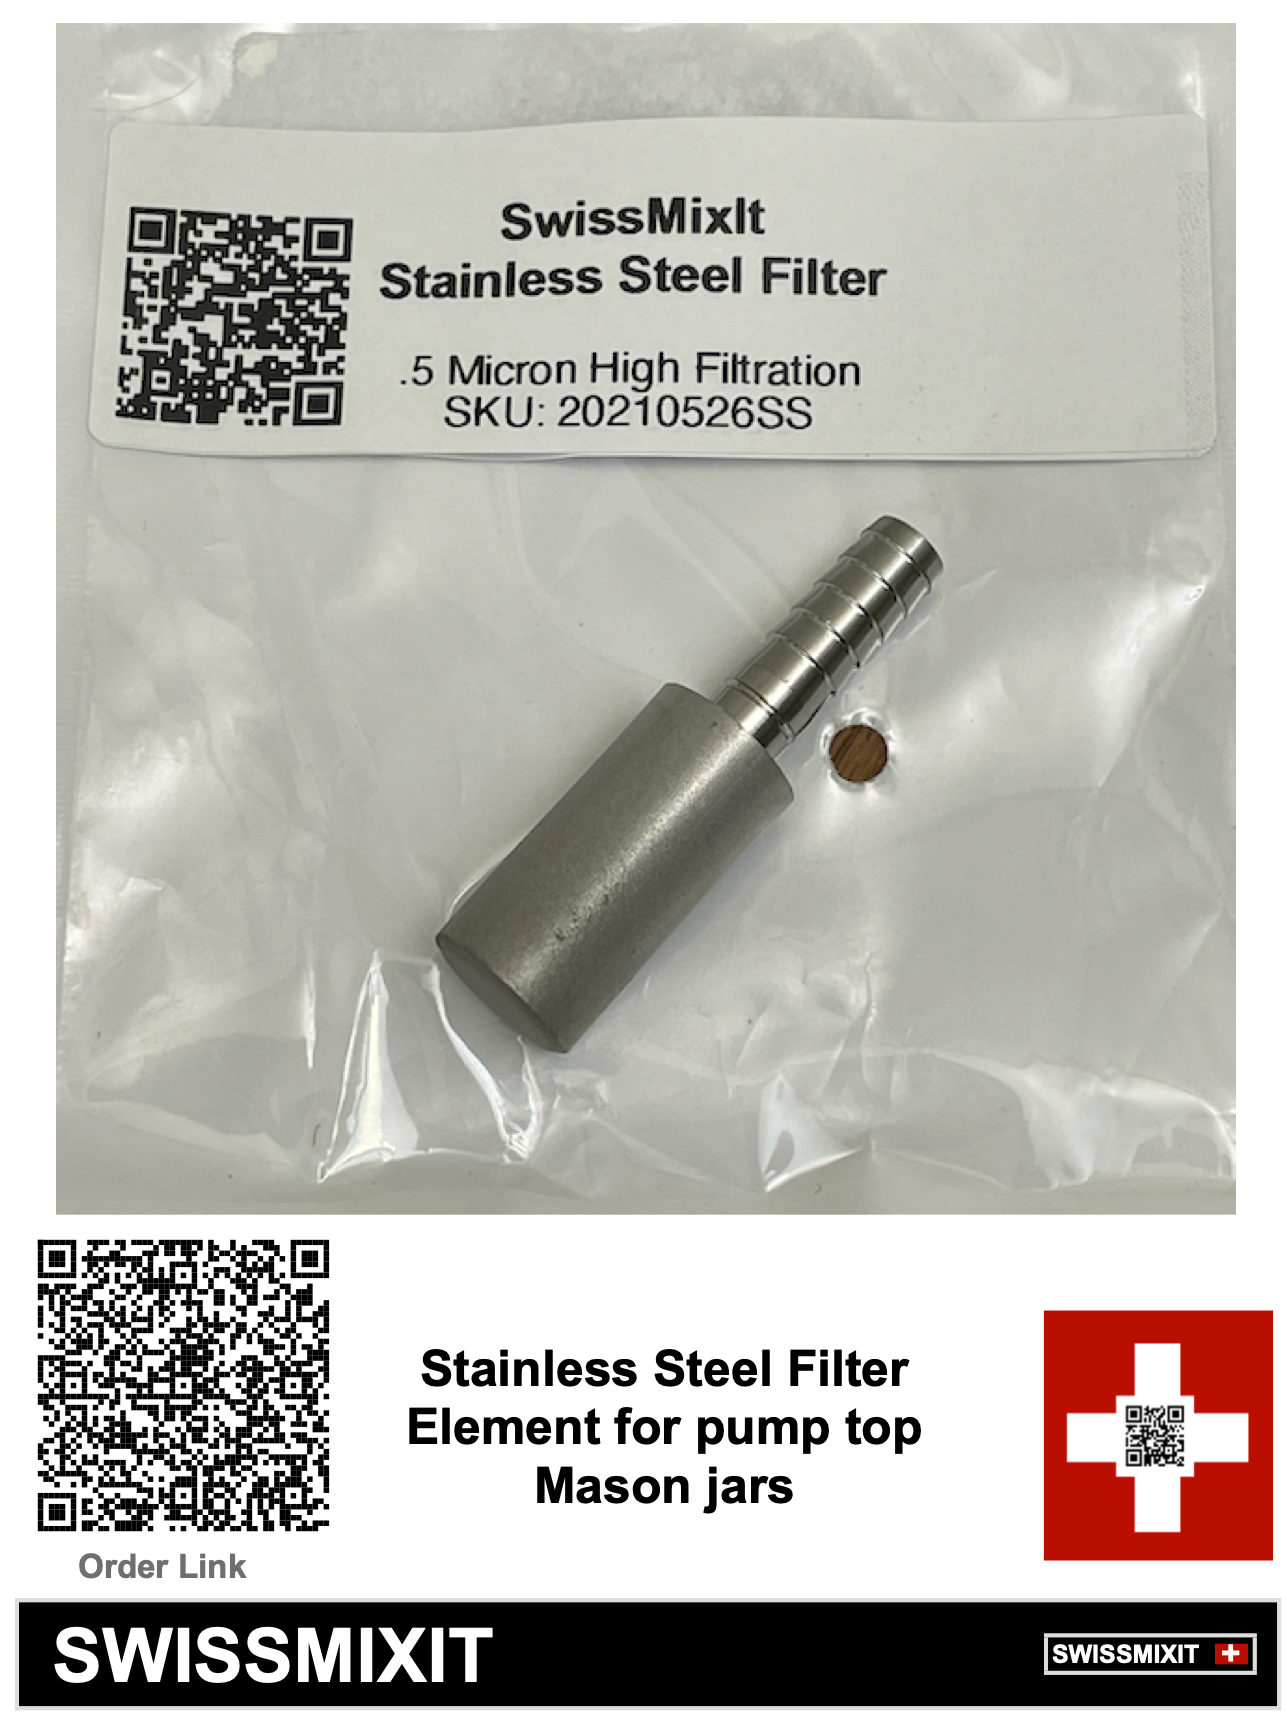 Stainless Steel .5 Micron high filtration element with 1/4 inch attach point. Used for pump tops on Mason jars or other container pumps that allow a 1/4 inch tube connection. This is for making oil infusions. Allows you to mix and extract in same Mason jar and then pump out oil and extract while filter leaves and particulates behind.